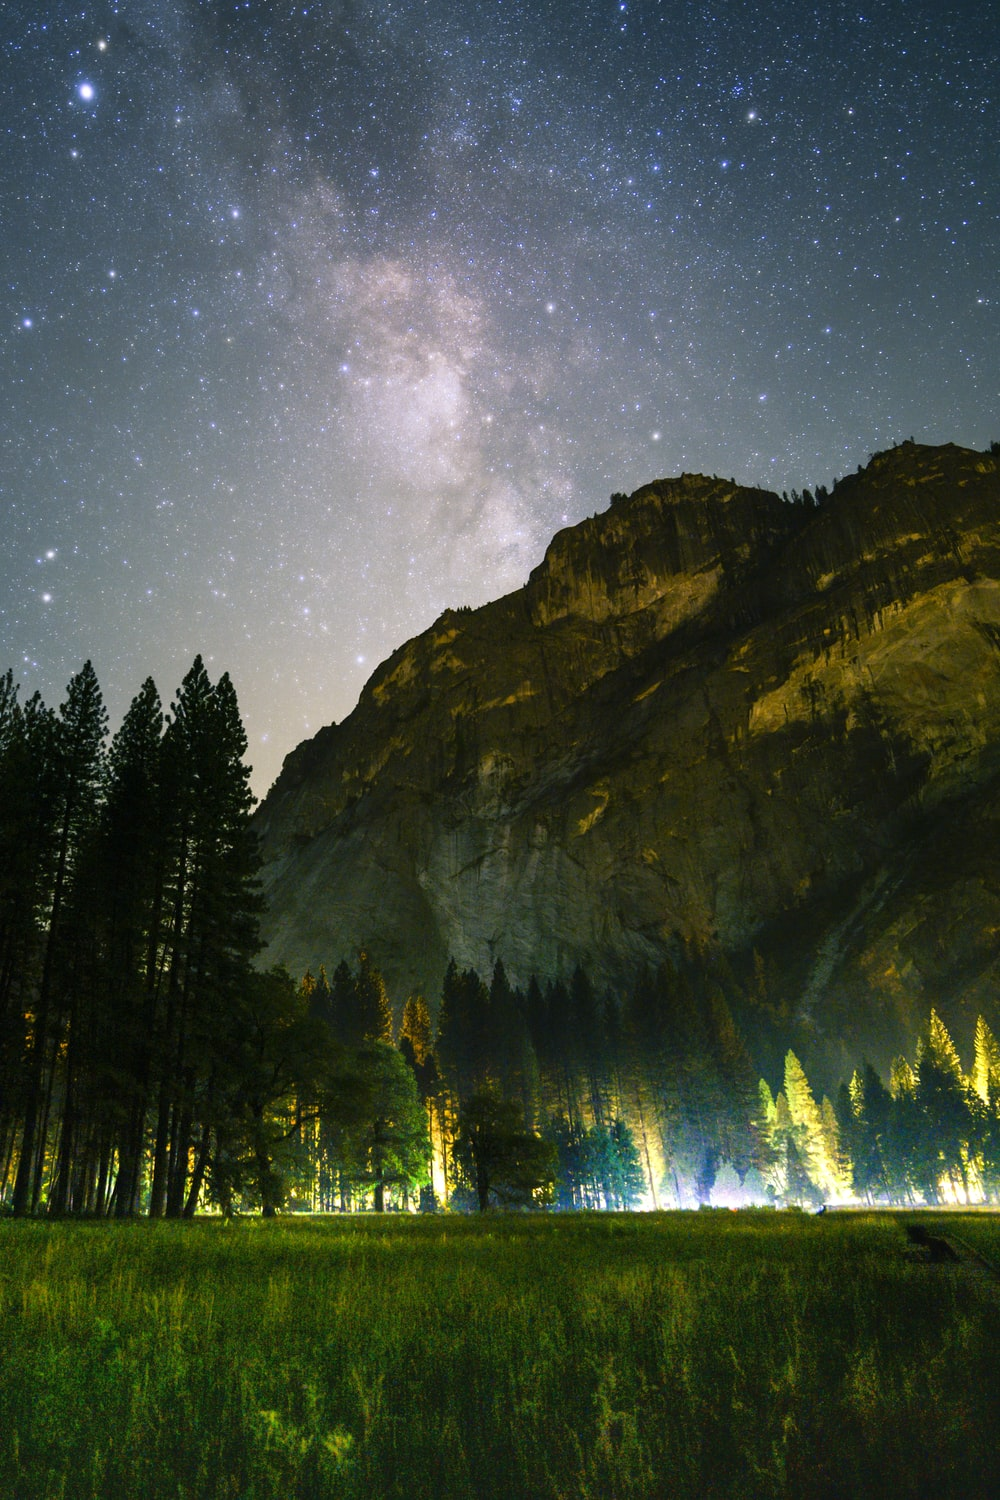 green grass field and tall trees in front of mountain under the galaxy